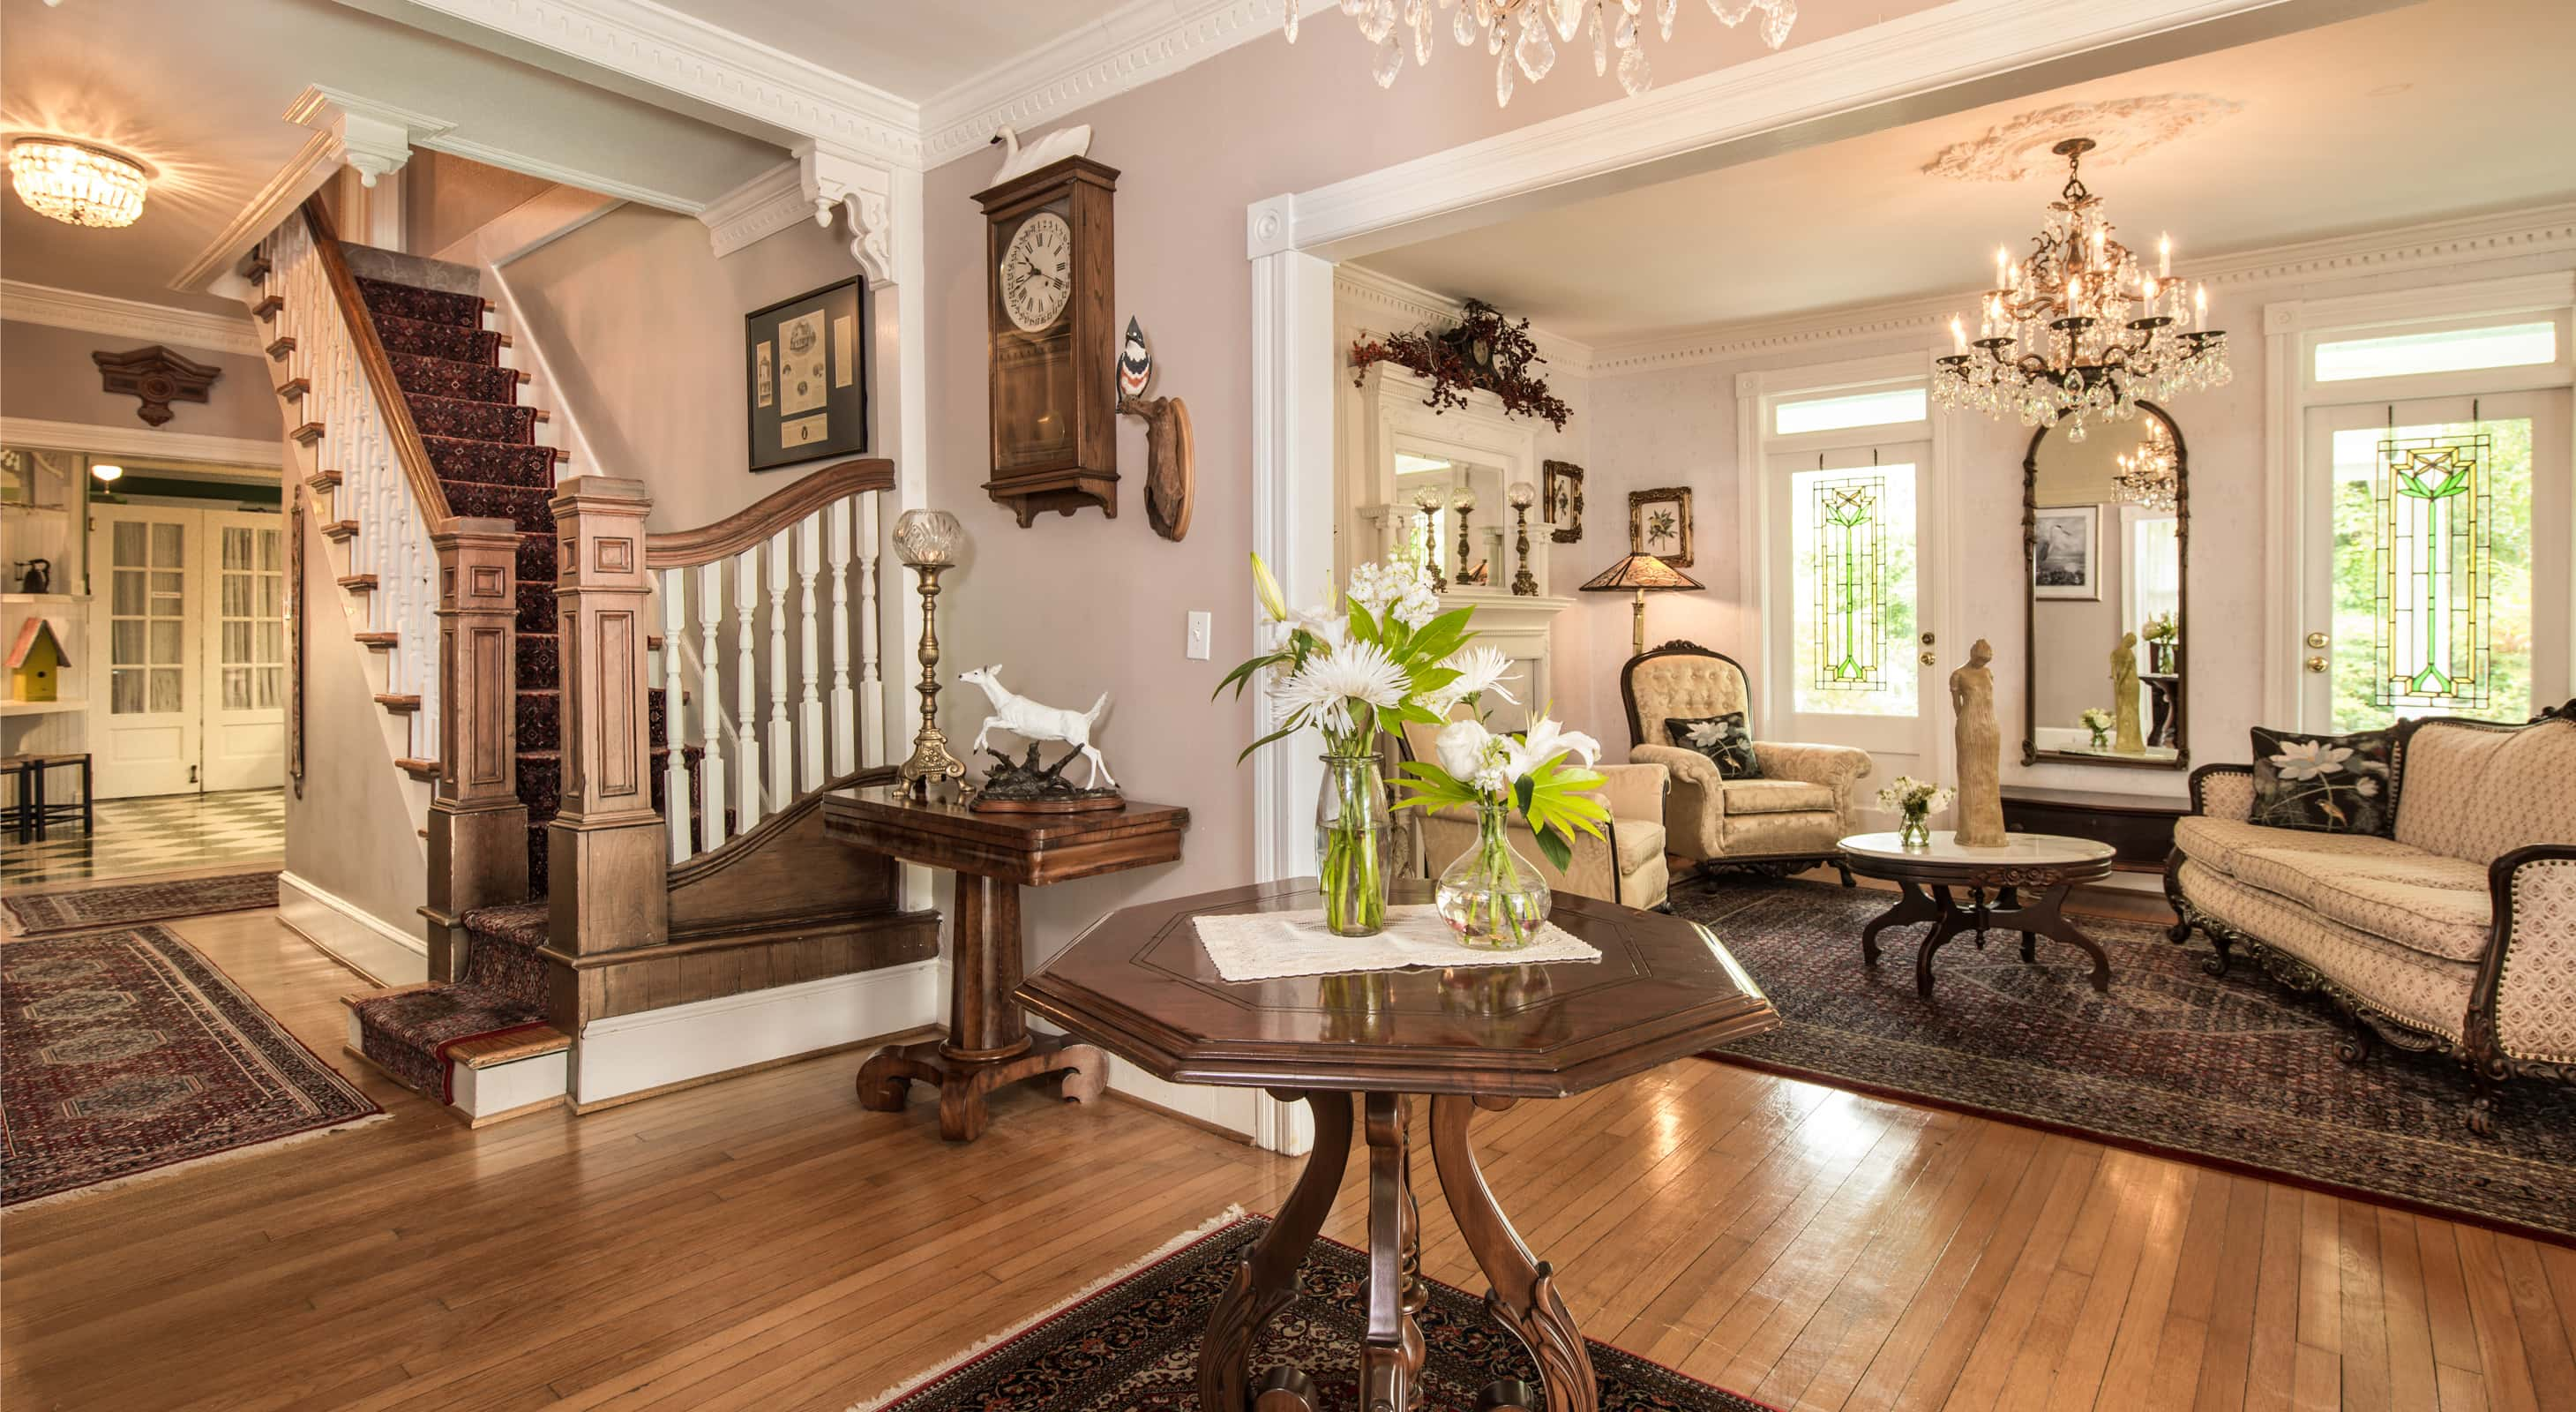 beautiful wood entry, living area and staircase at Outer Banks Area B&B